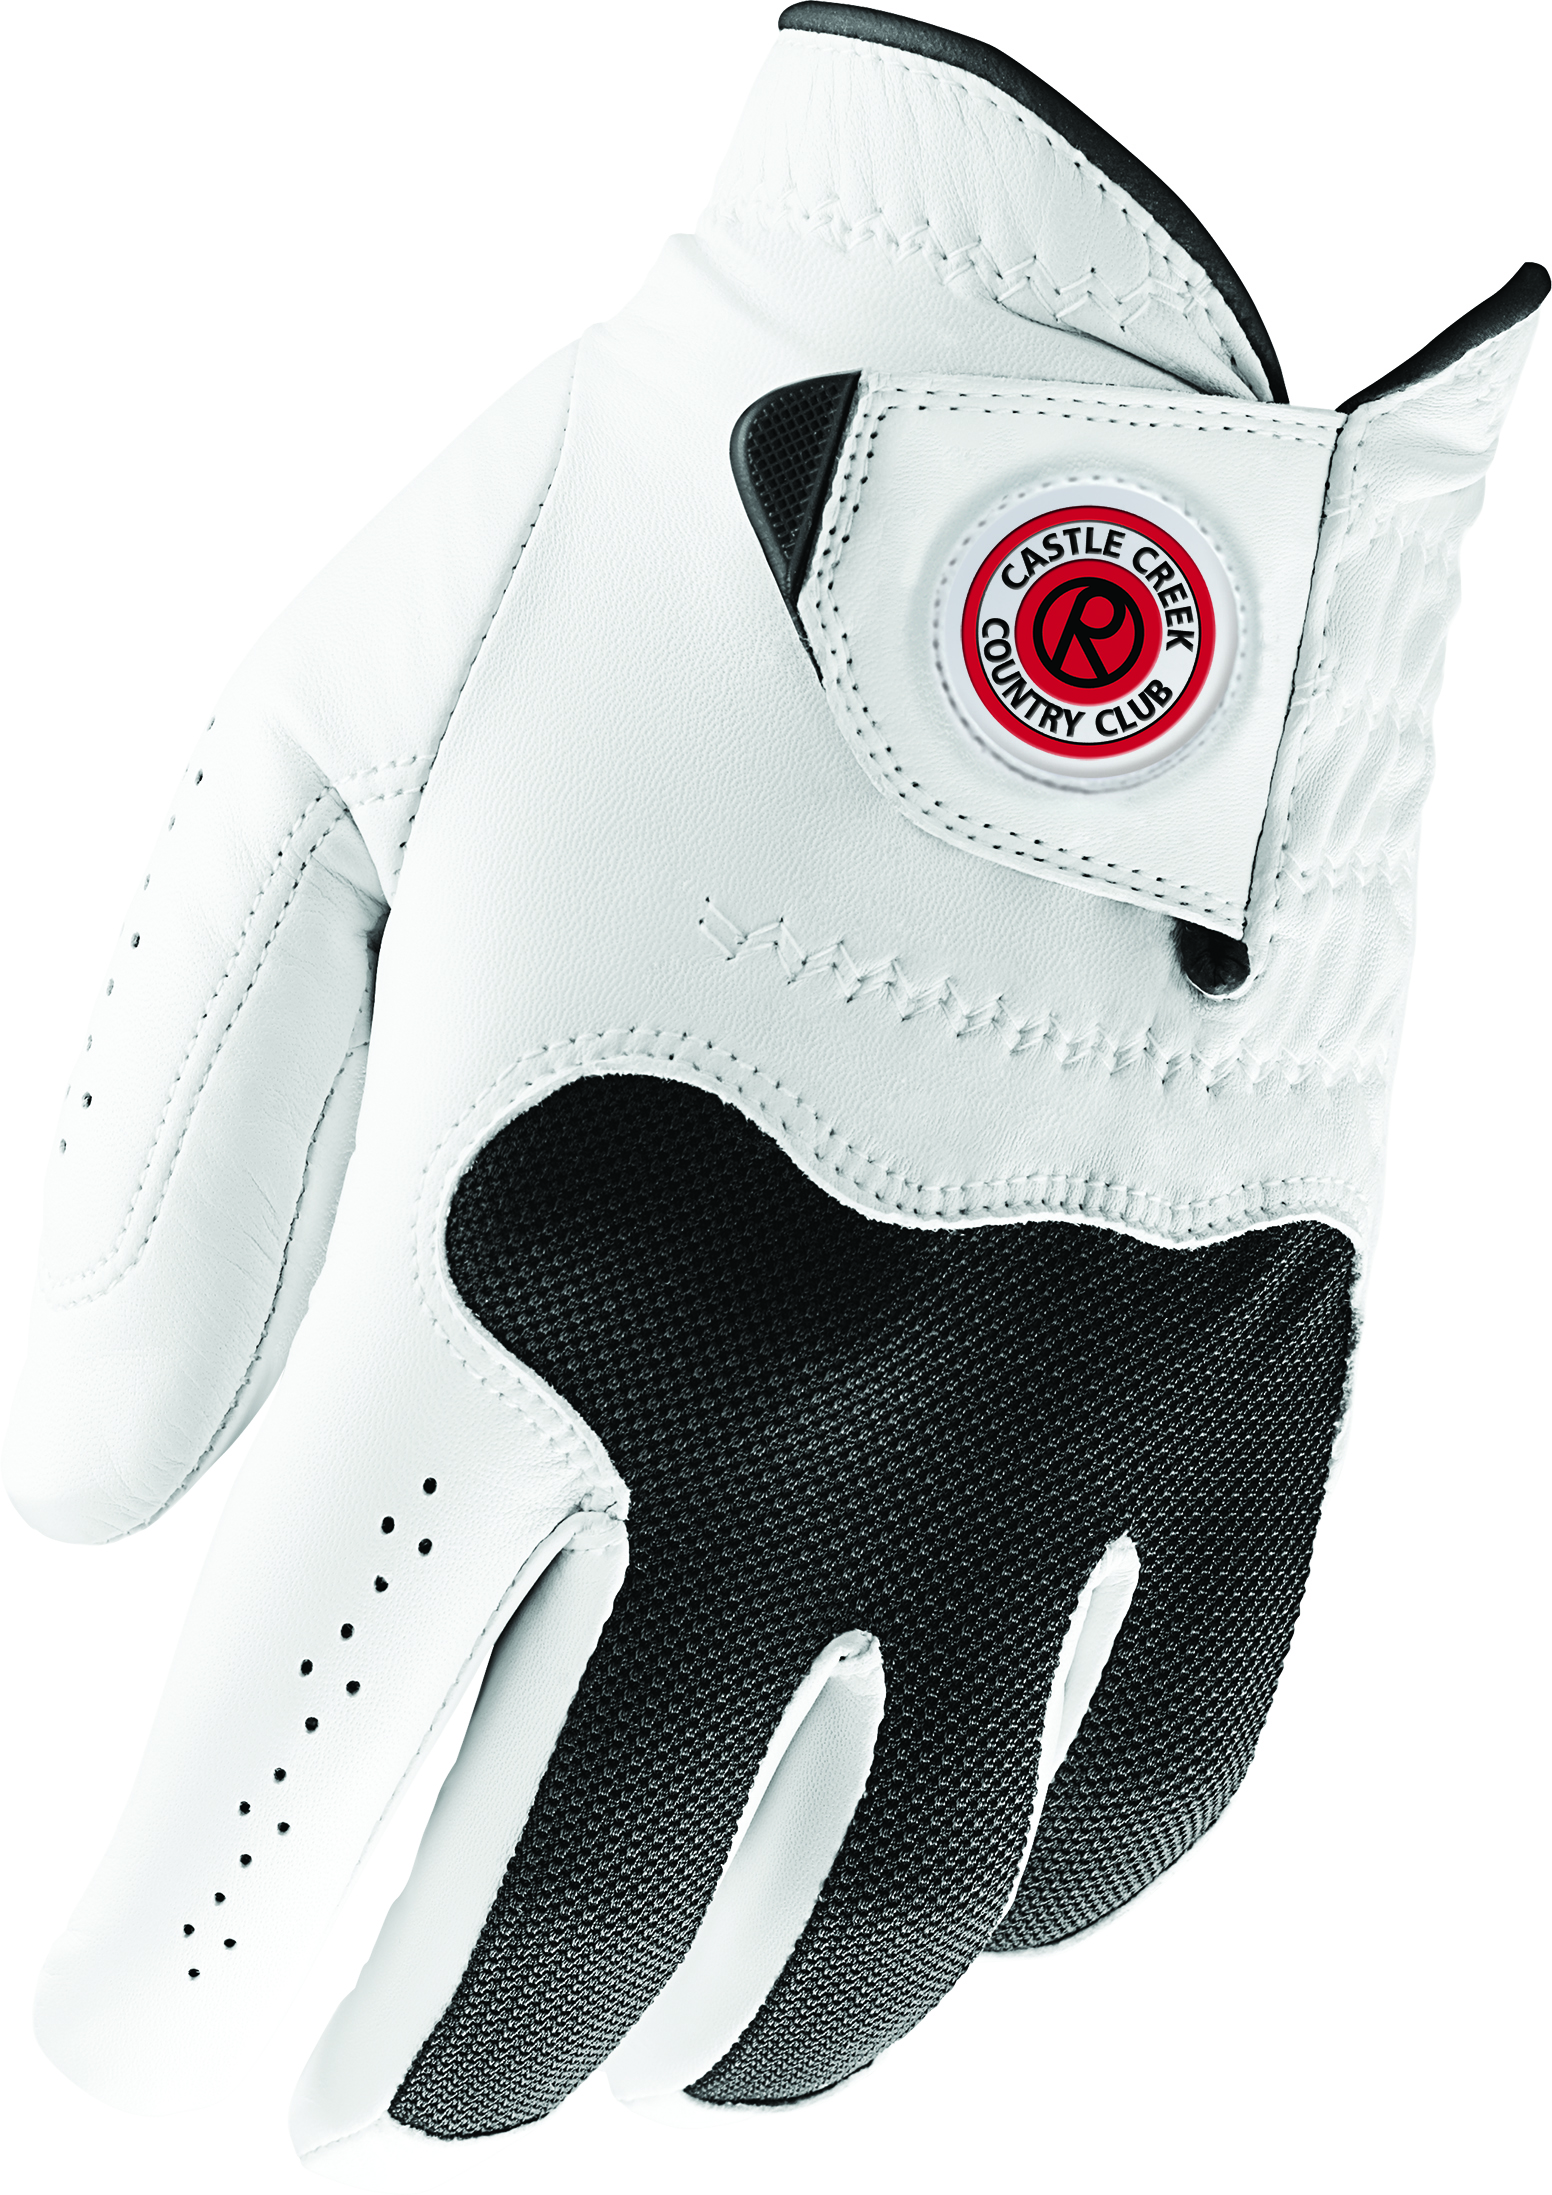 Wilson Staff Conform Leather Glove